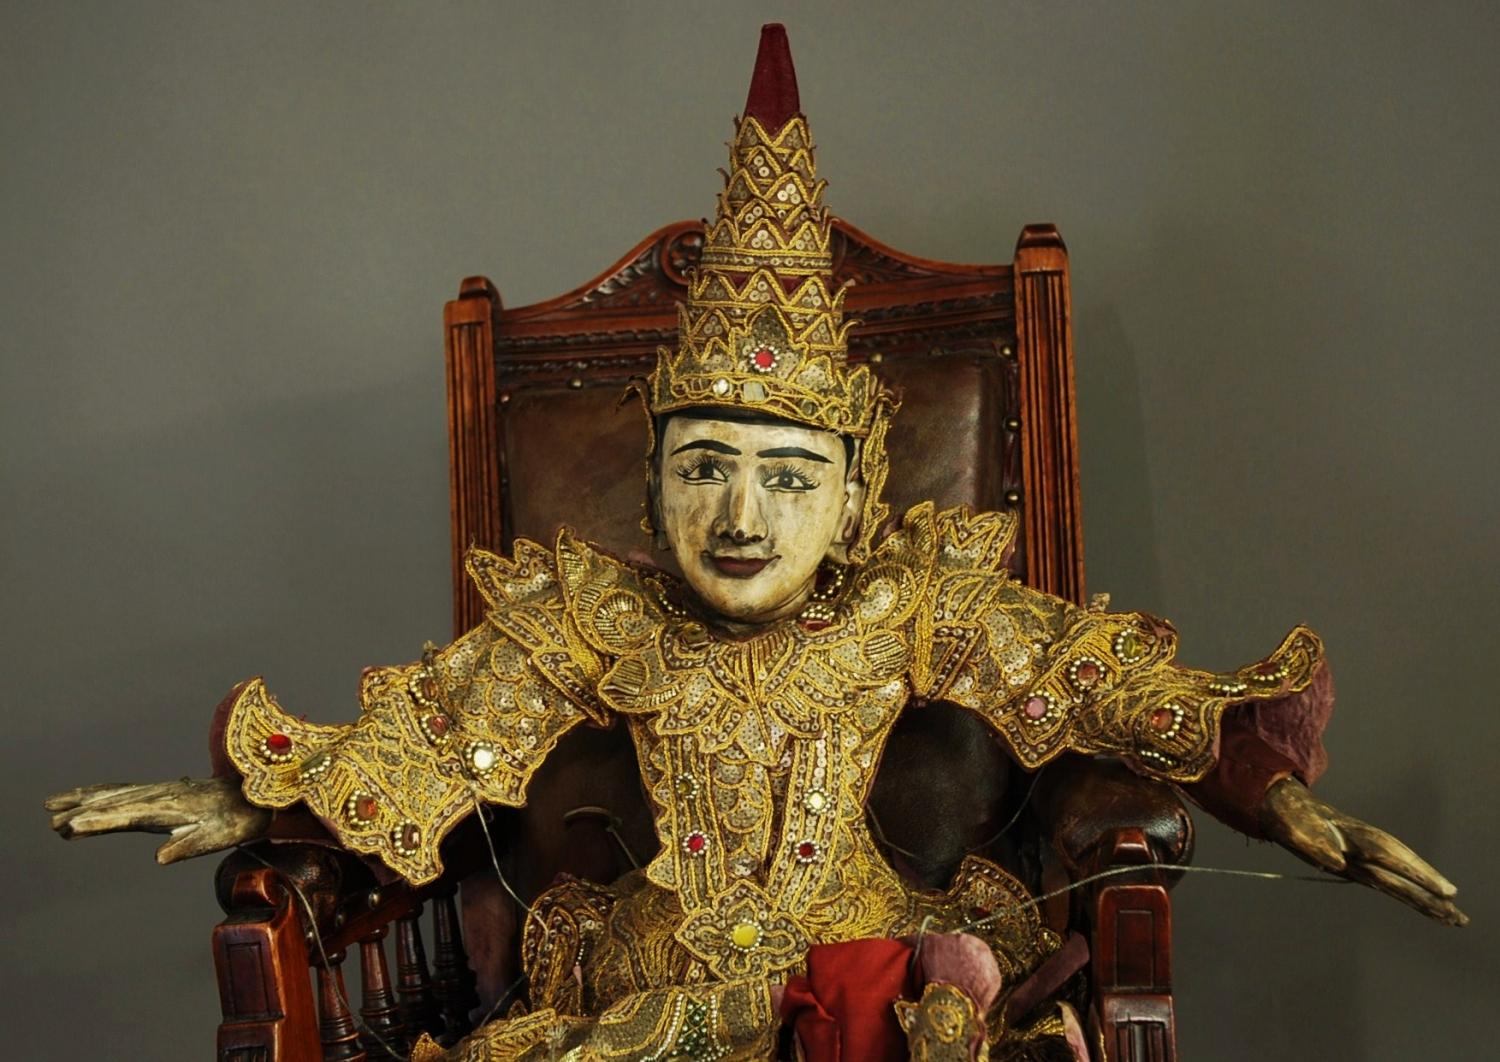 Highly decorative Burmese marionette